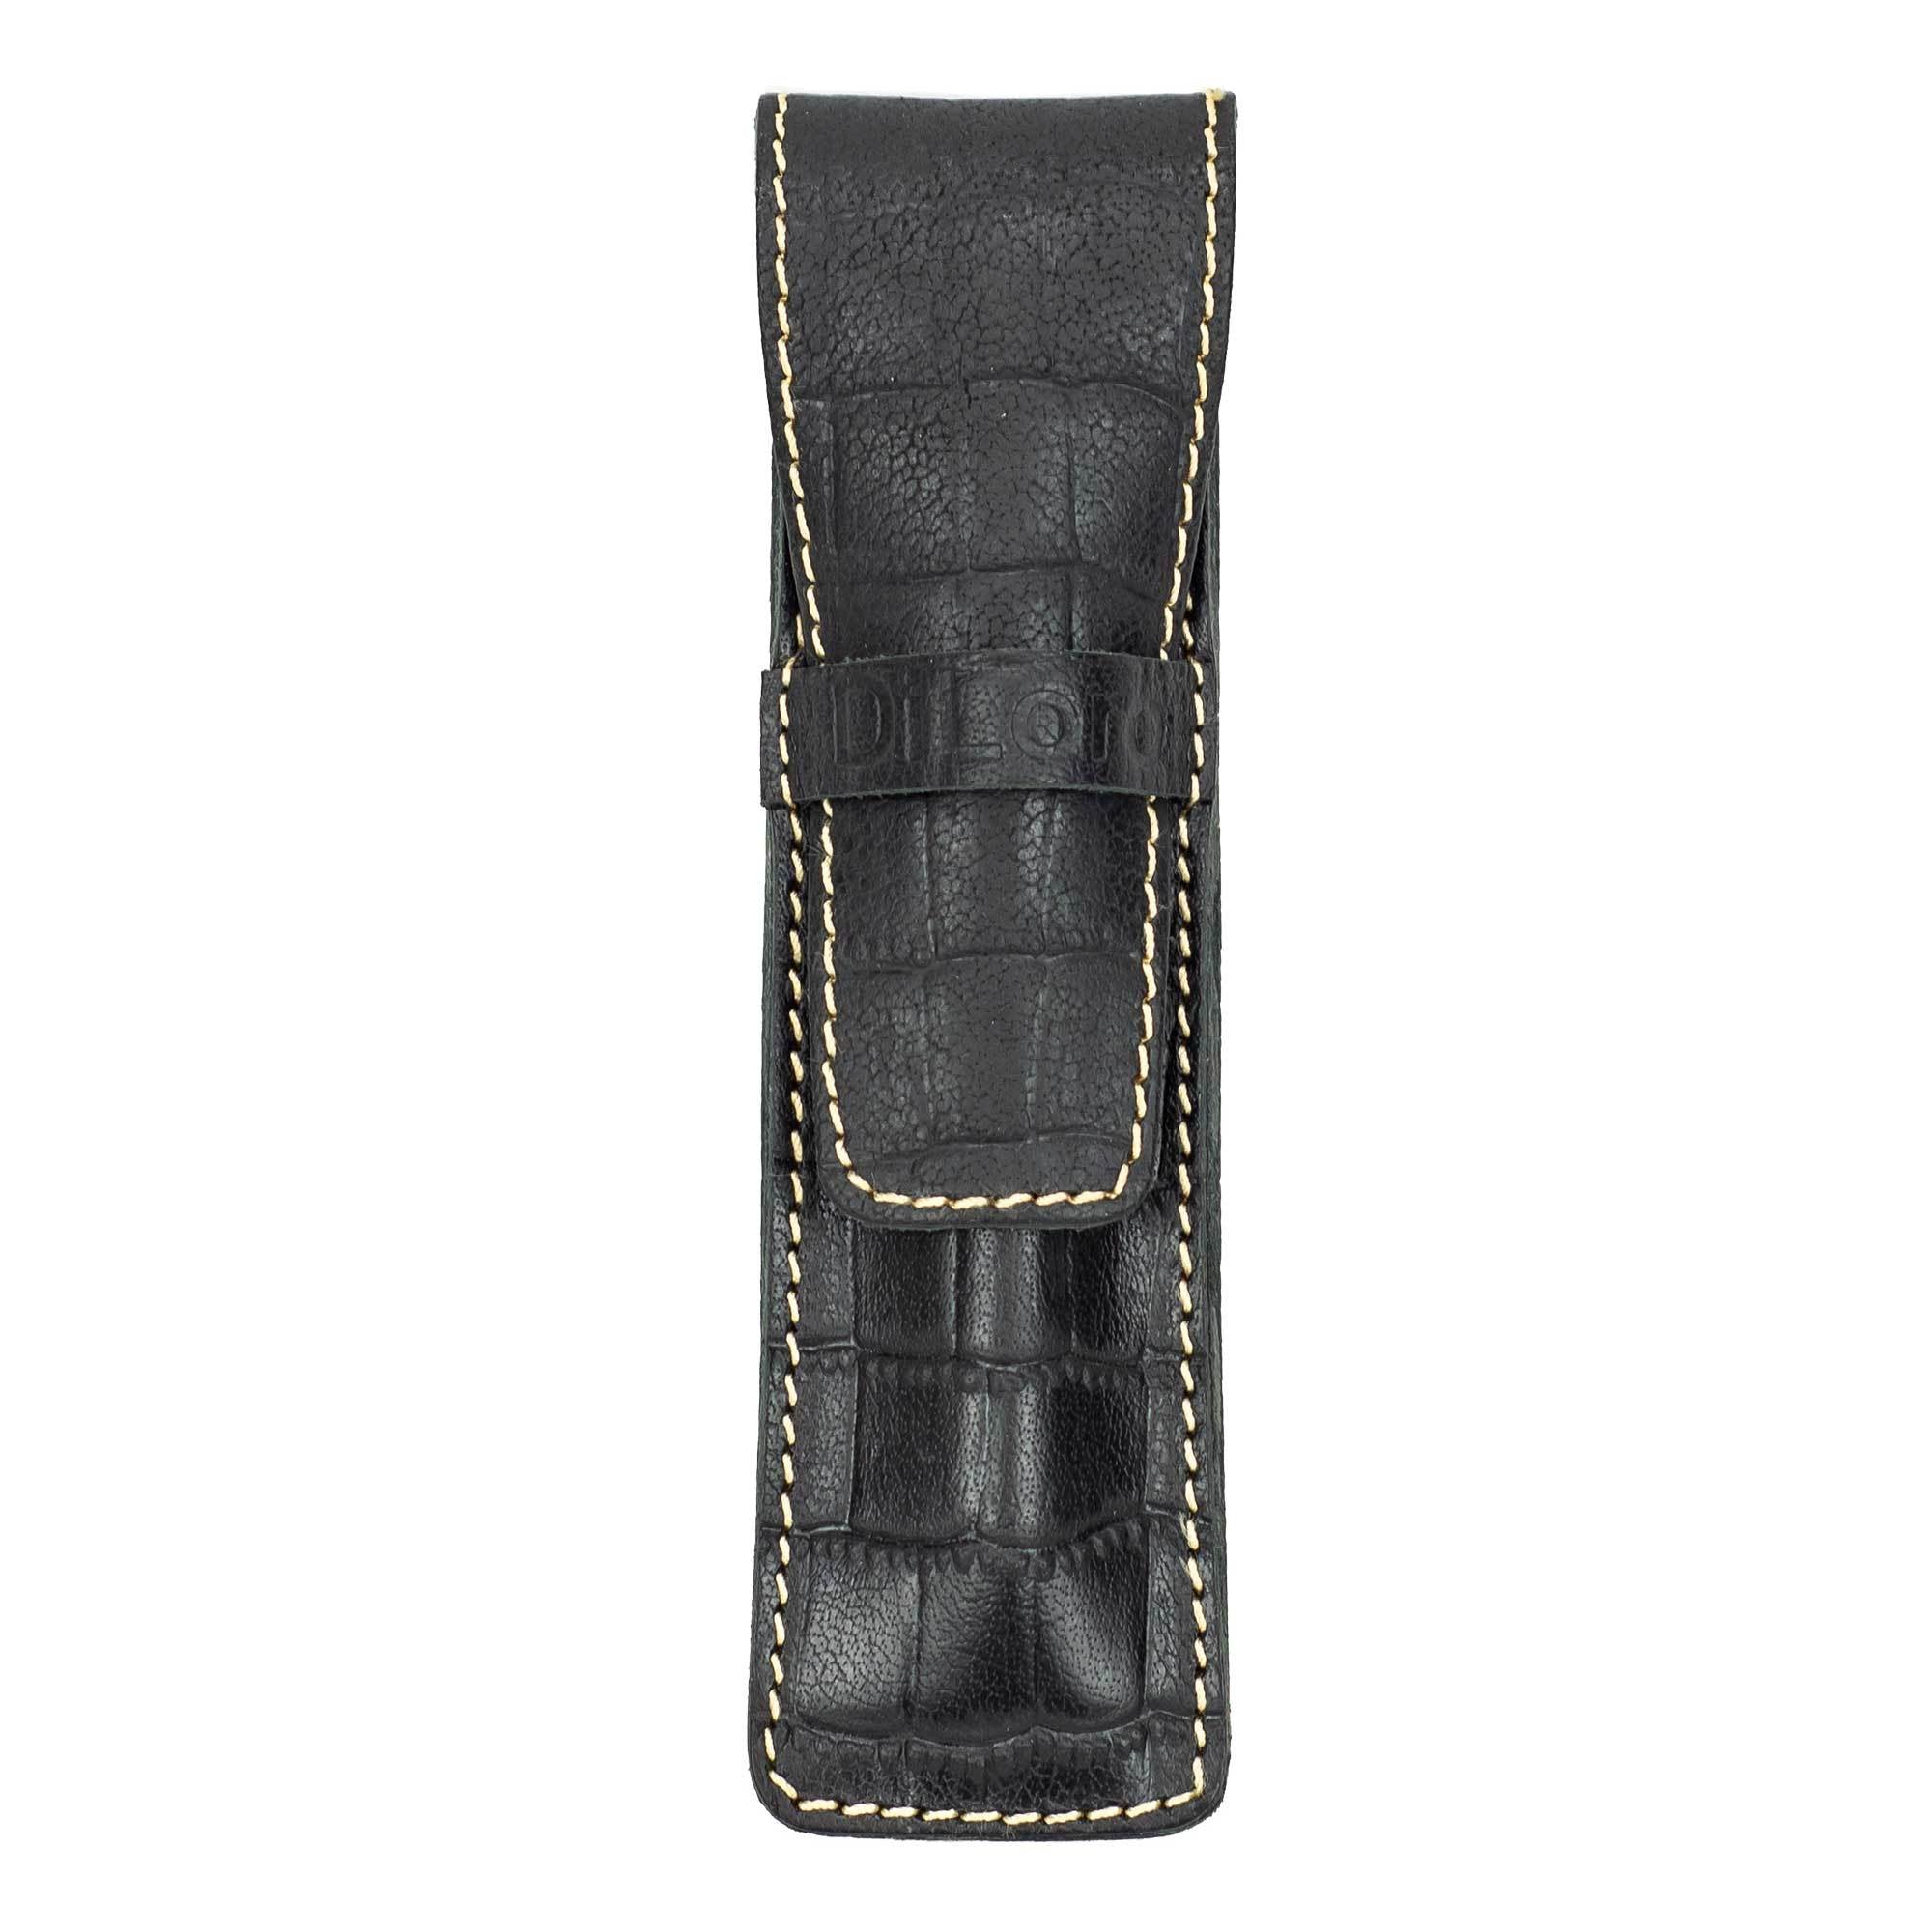 DiLoro Leather Pen Case Holder Black Croc Print for One Single Pen or Mechanical Pencil - Designed in Switzerland